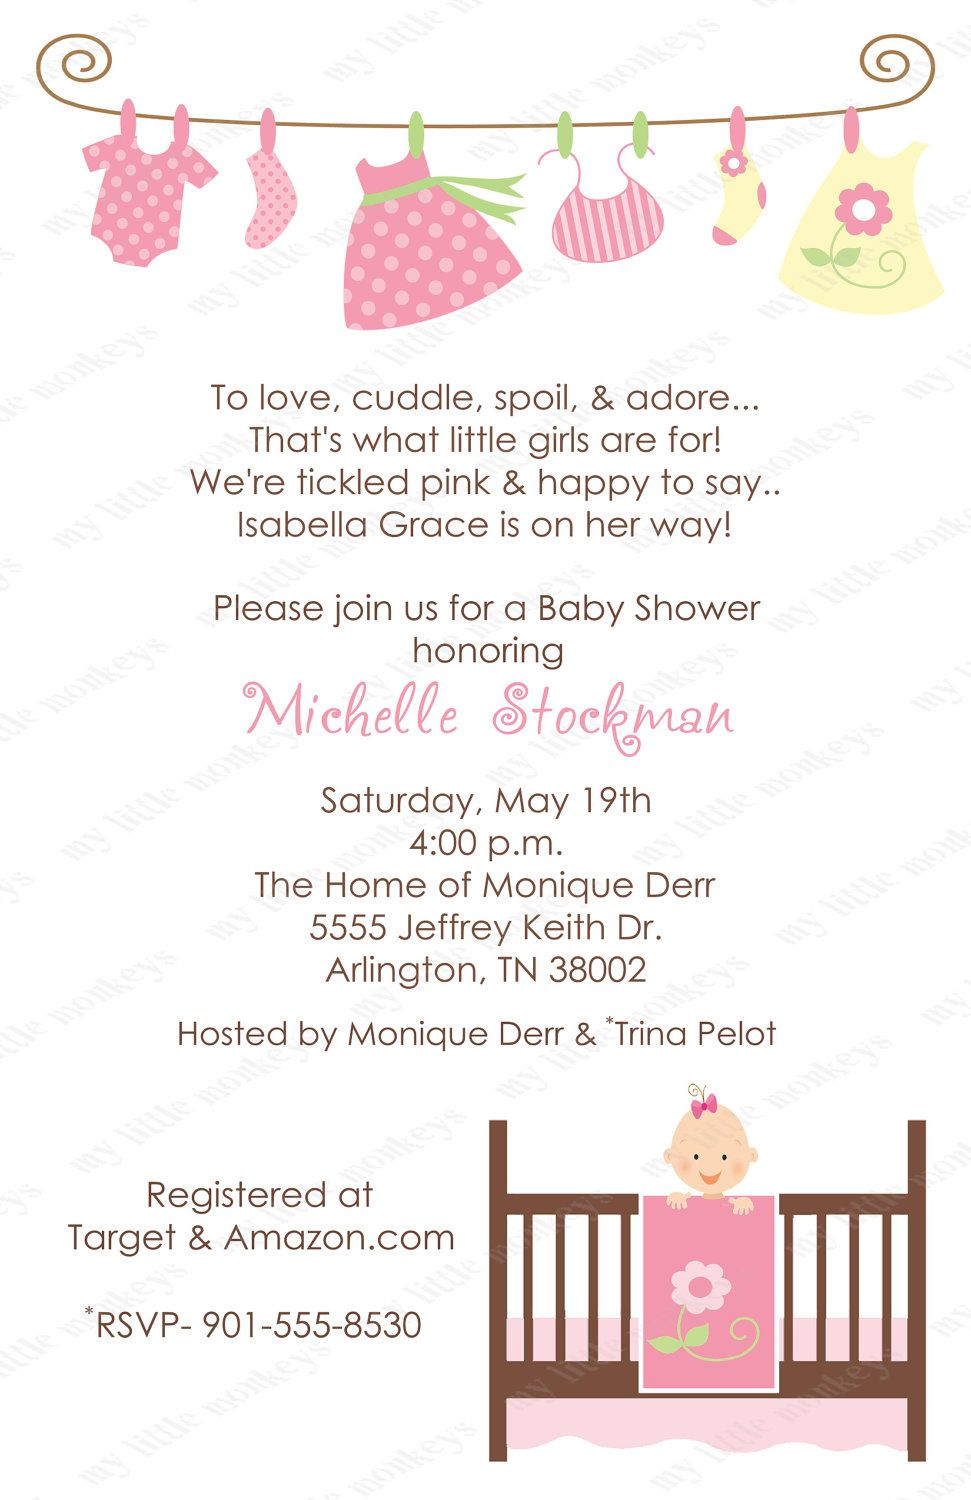 10 Twin Girls Baby Shower Laundry Invitations with Envelopes. Free ...